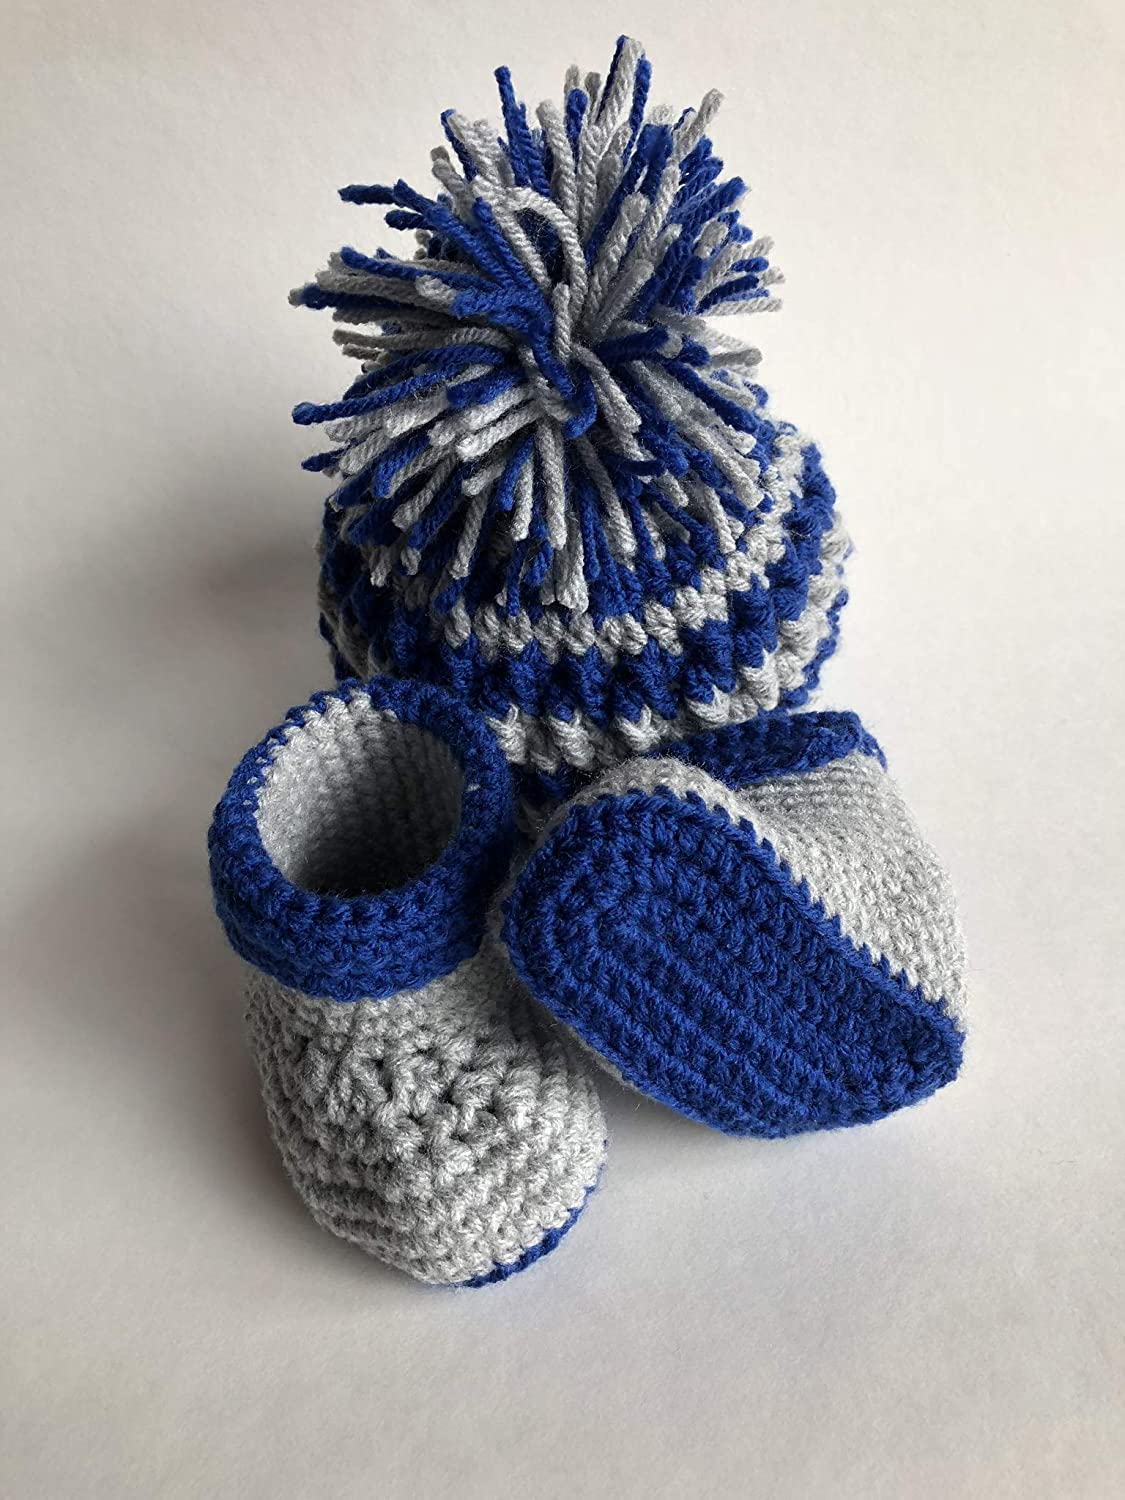 Handmade baby boy gift set, Pom Pom Beanie and Matching Booties, 0-6 months, Blue/Grey